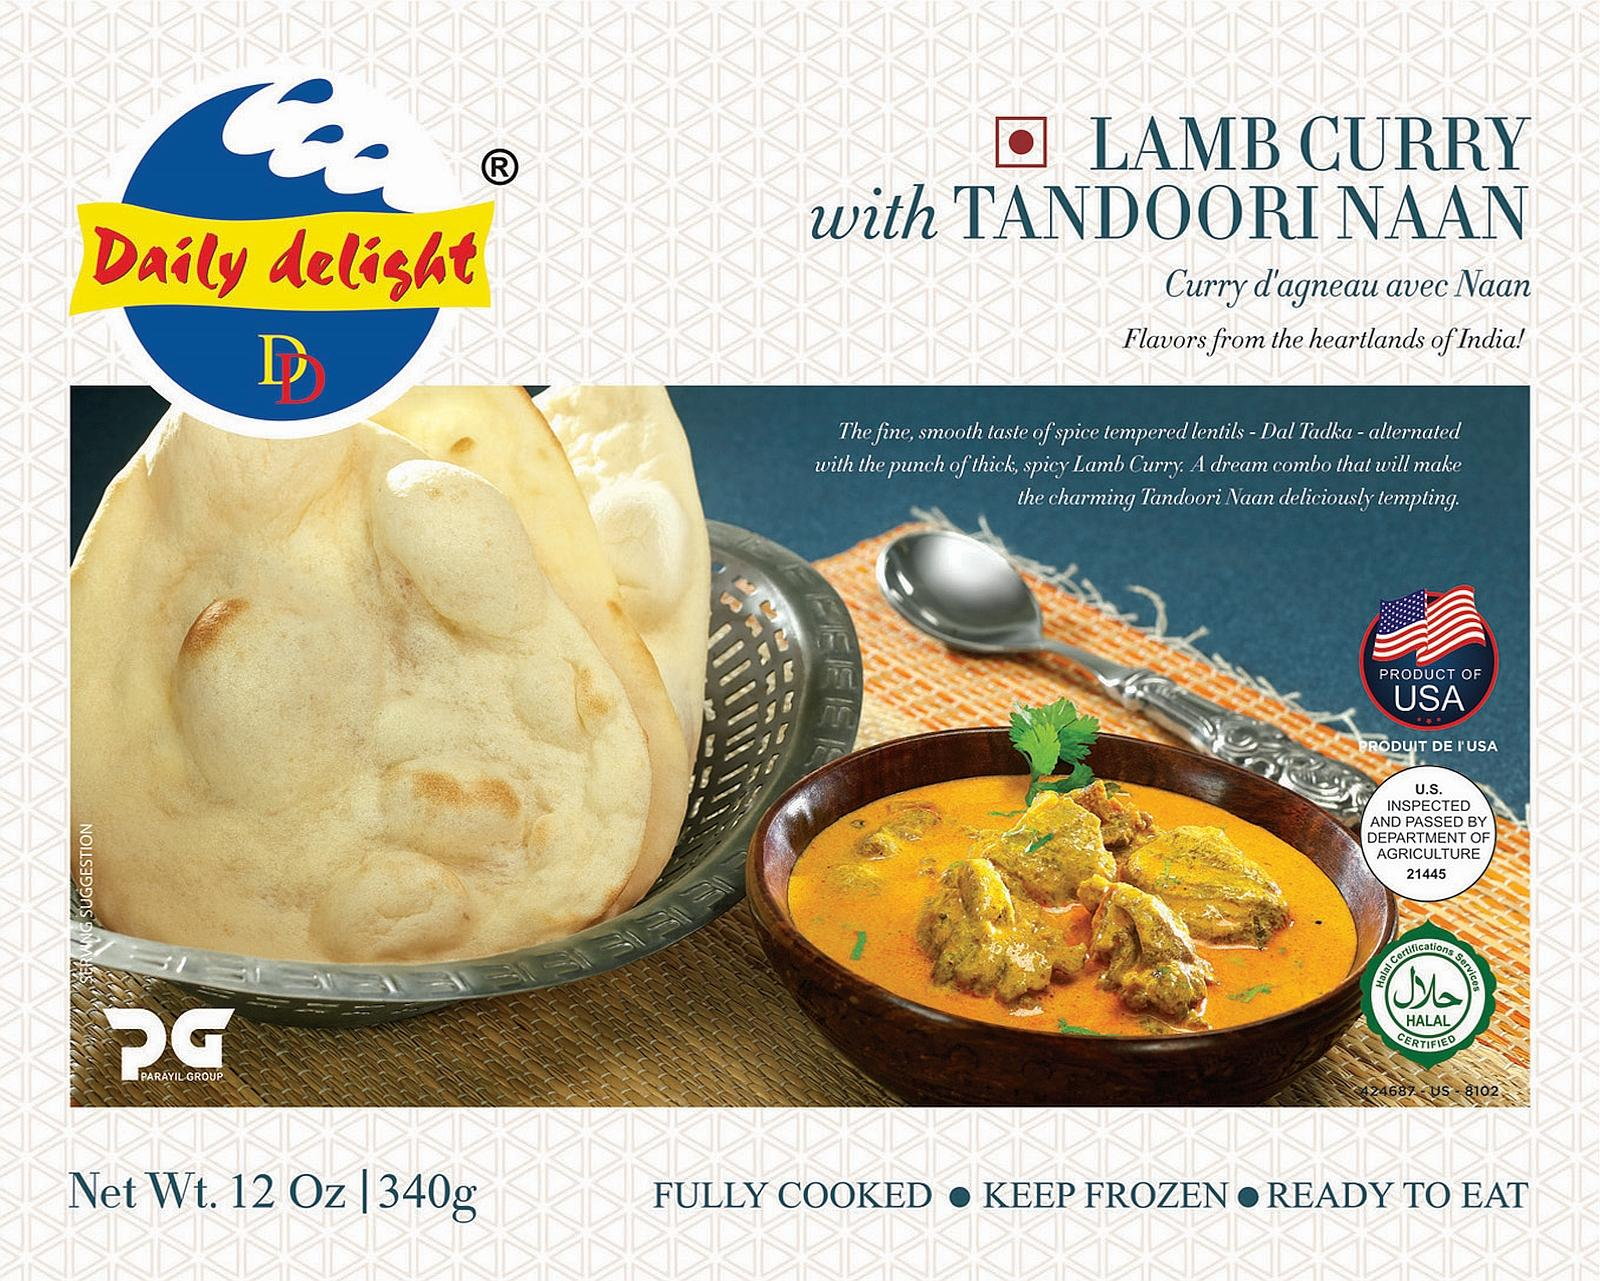 Daily Delight Lamb Curry with Tandoori Naan